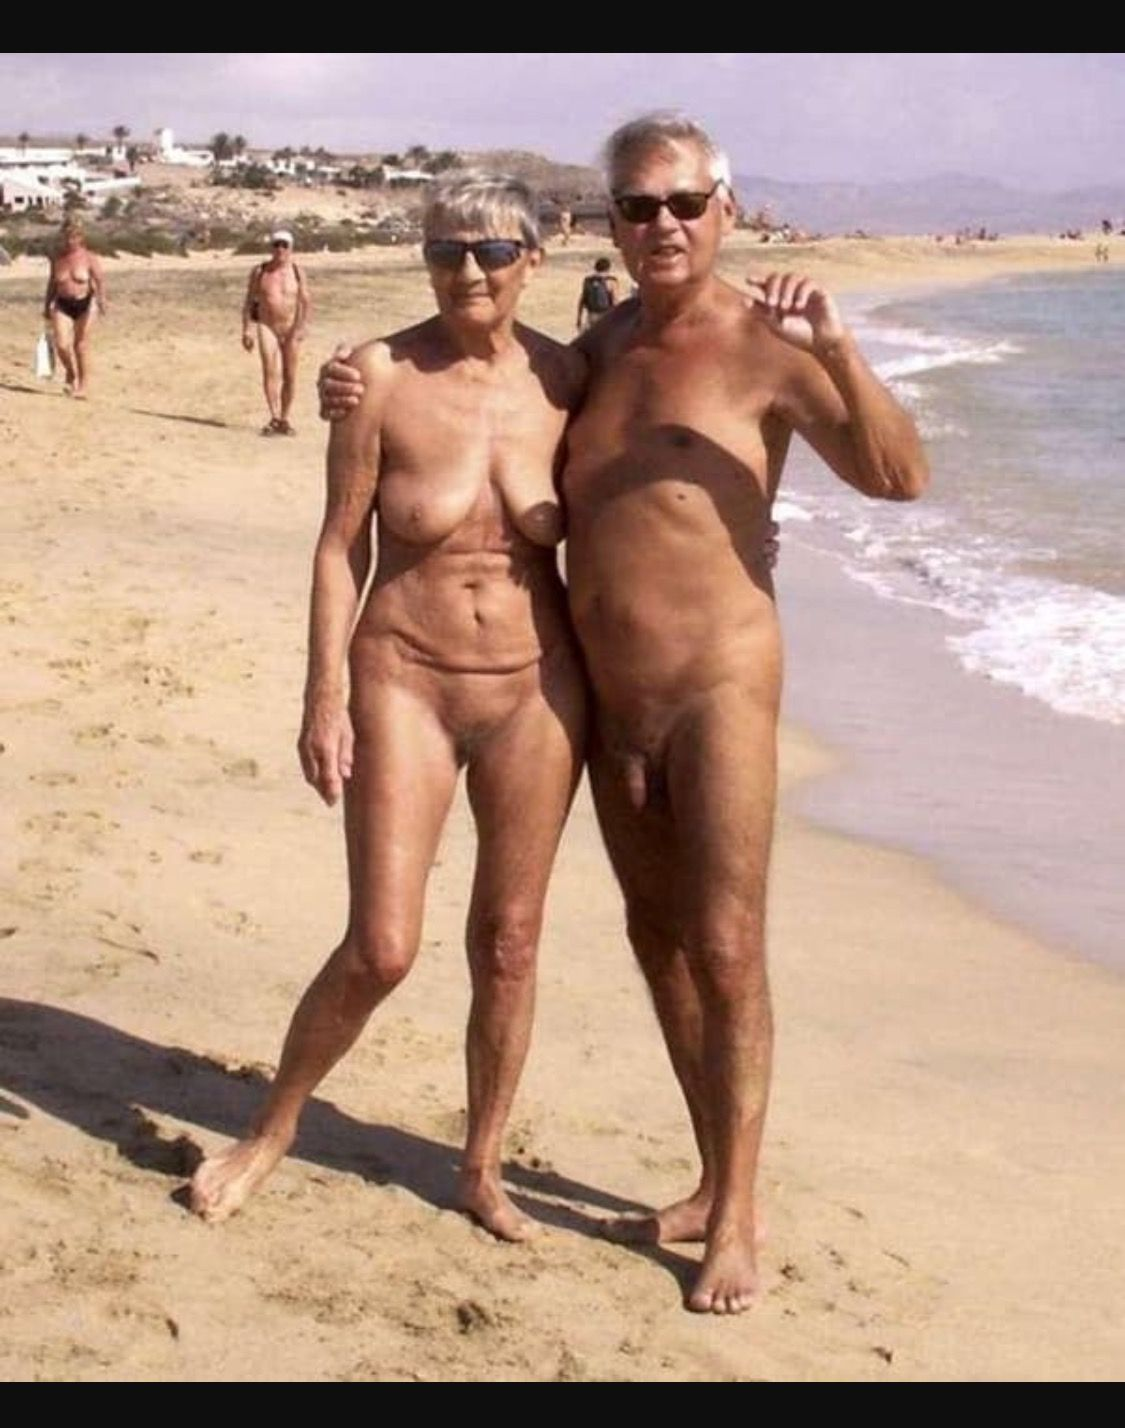 Sorry, Pinterest nudism couples